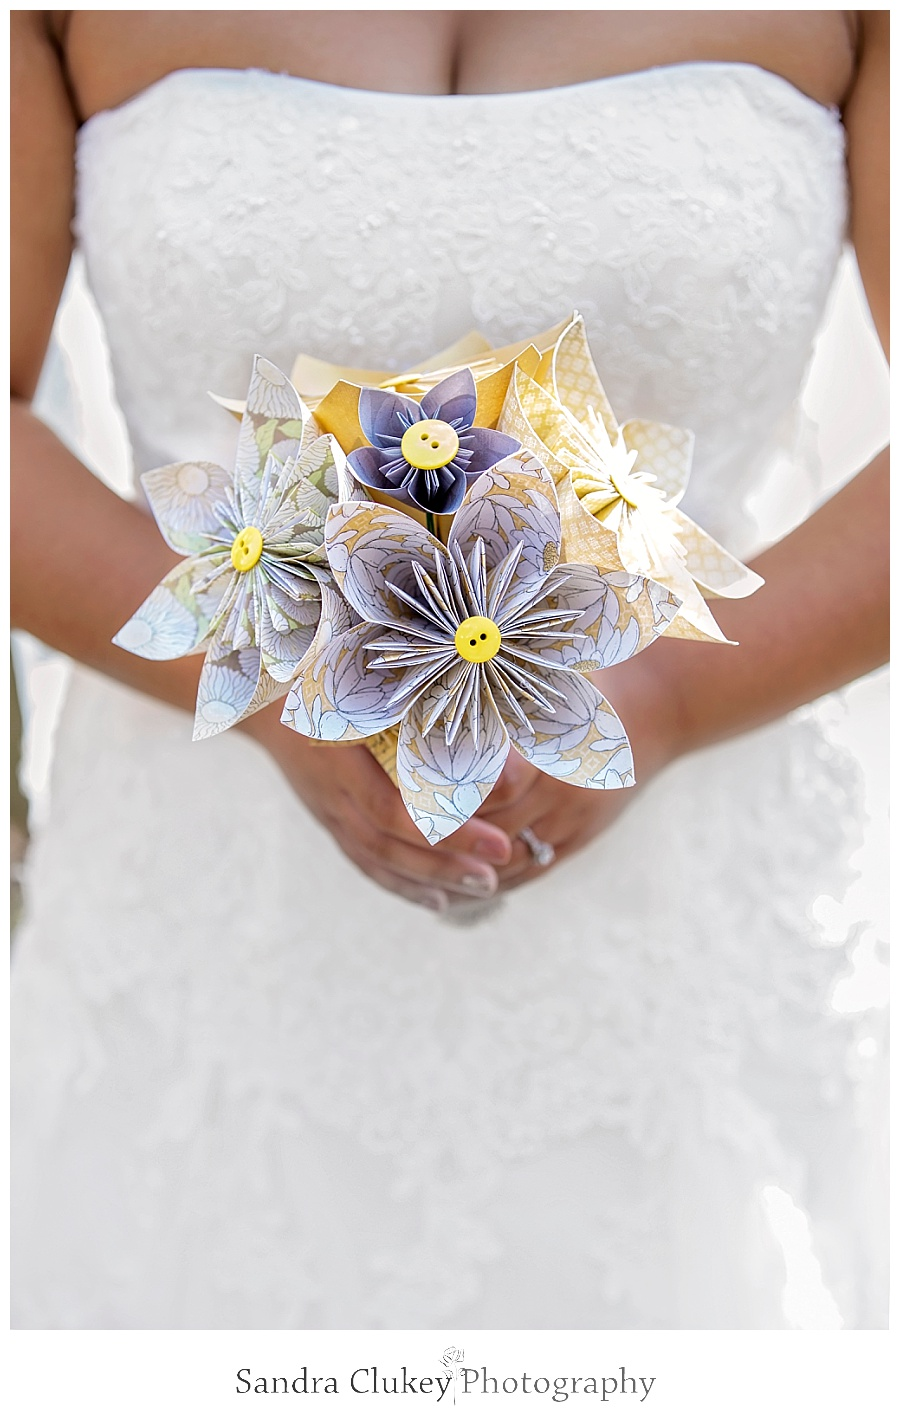 Stunning bridal shot with bouquet